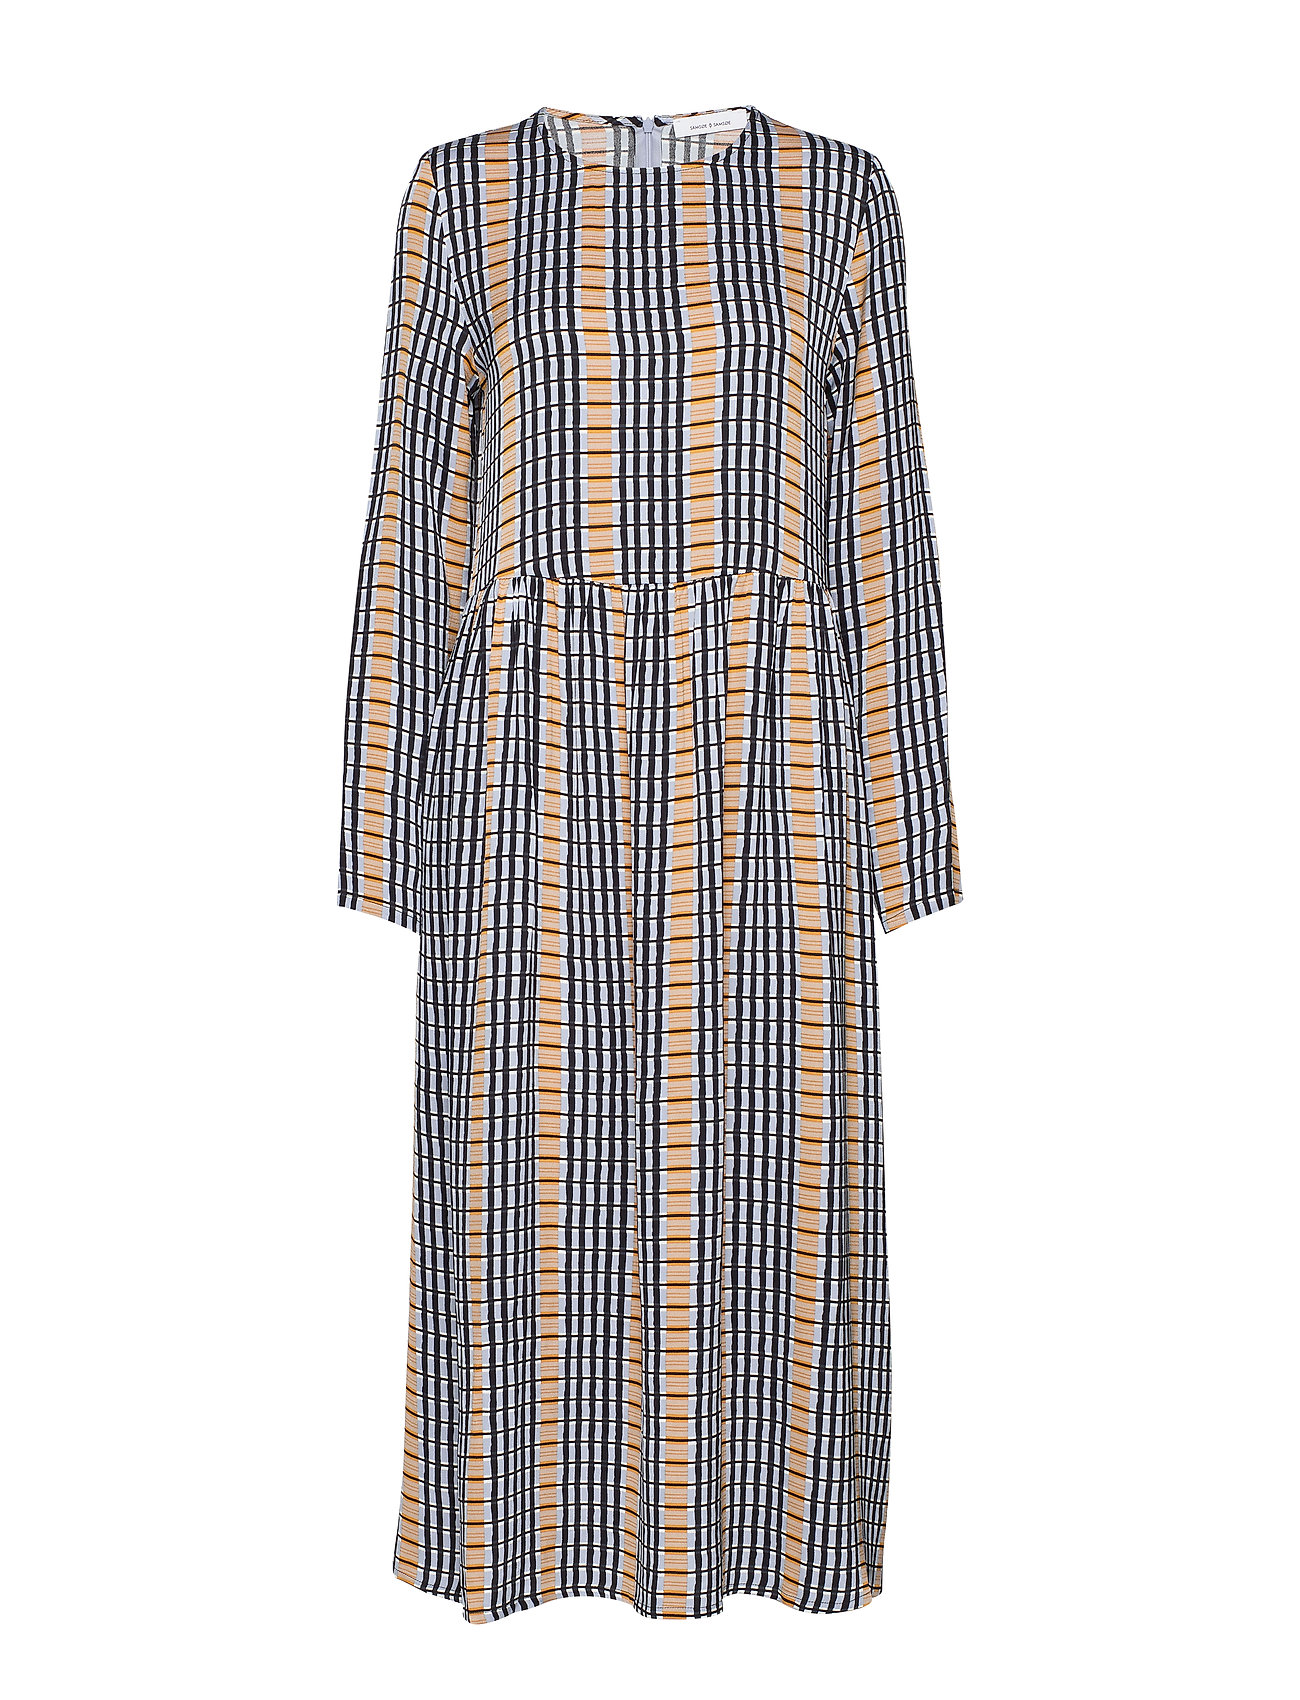 Samsøe & Samsøe Rama dress aop 8325 - INCA CHECK